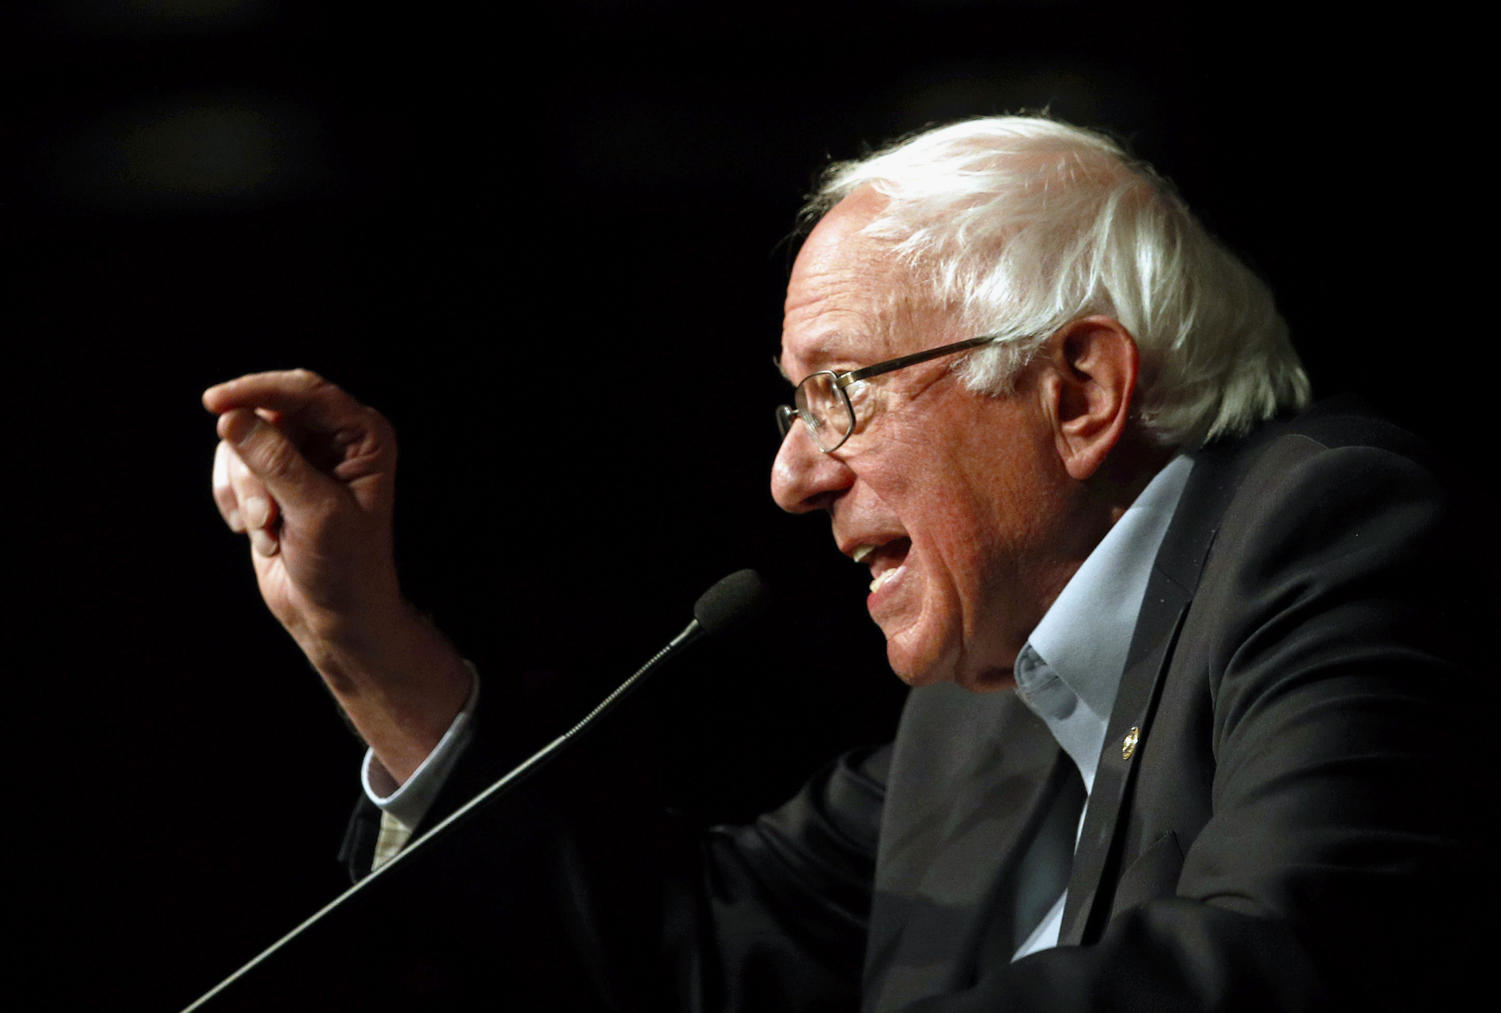 FILE - In this Oct. 30, 2018 file photo, Sen. Bernie Sanders, I-Vt., speaks in support of Maryland Democratic gubernatorial candidate Ben Jealous at a campaign rally in Bethesda, Md. Sanders is seeking reelection in Vermont's Nov. 6 general election. (AP Photo/Patrick Semansky, File)